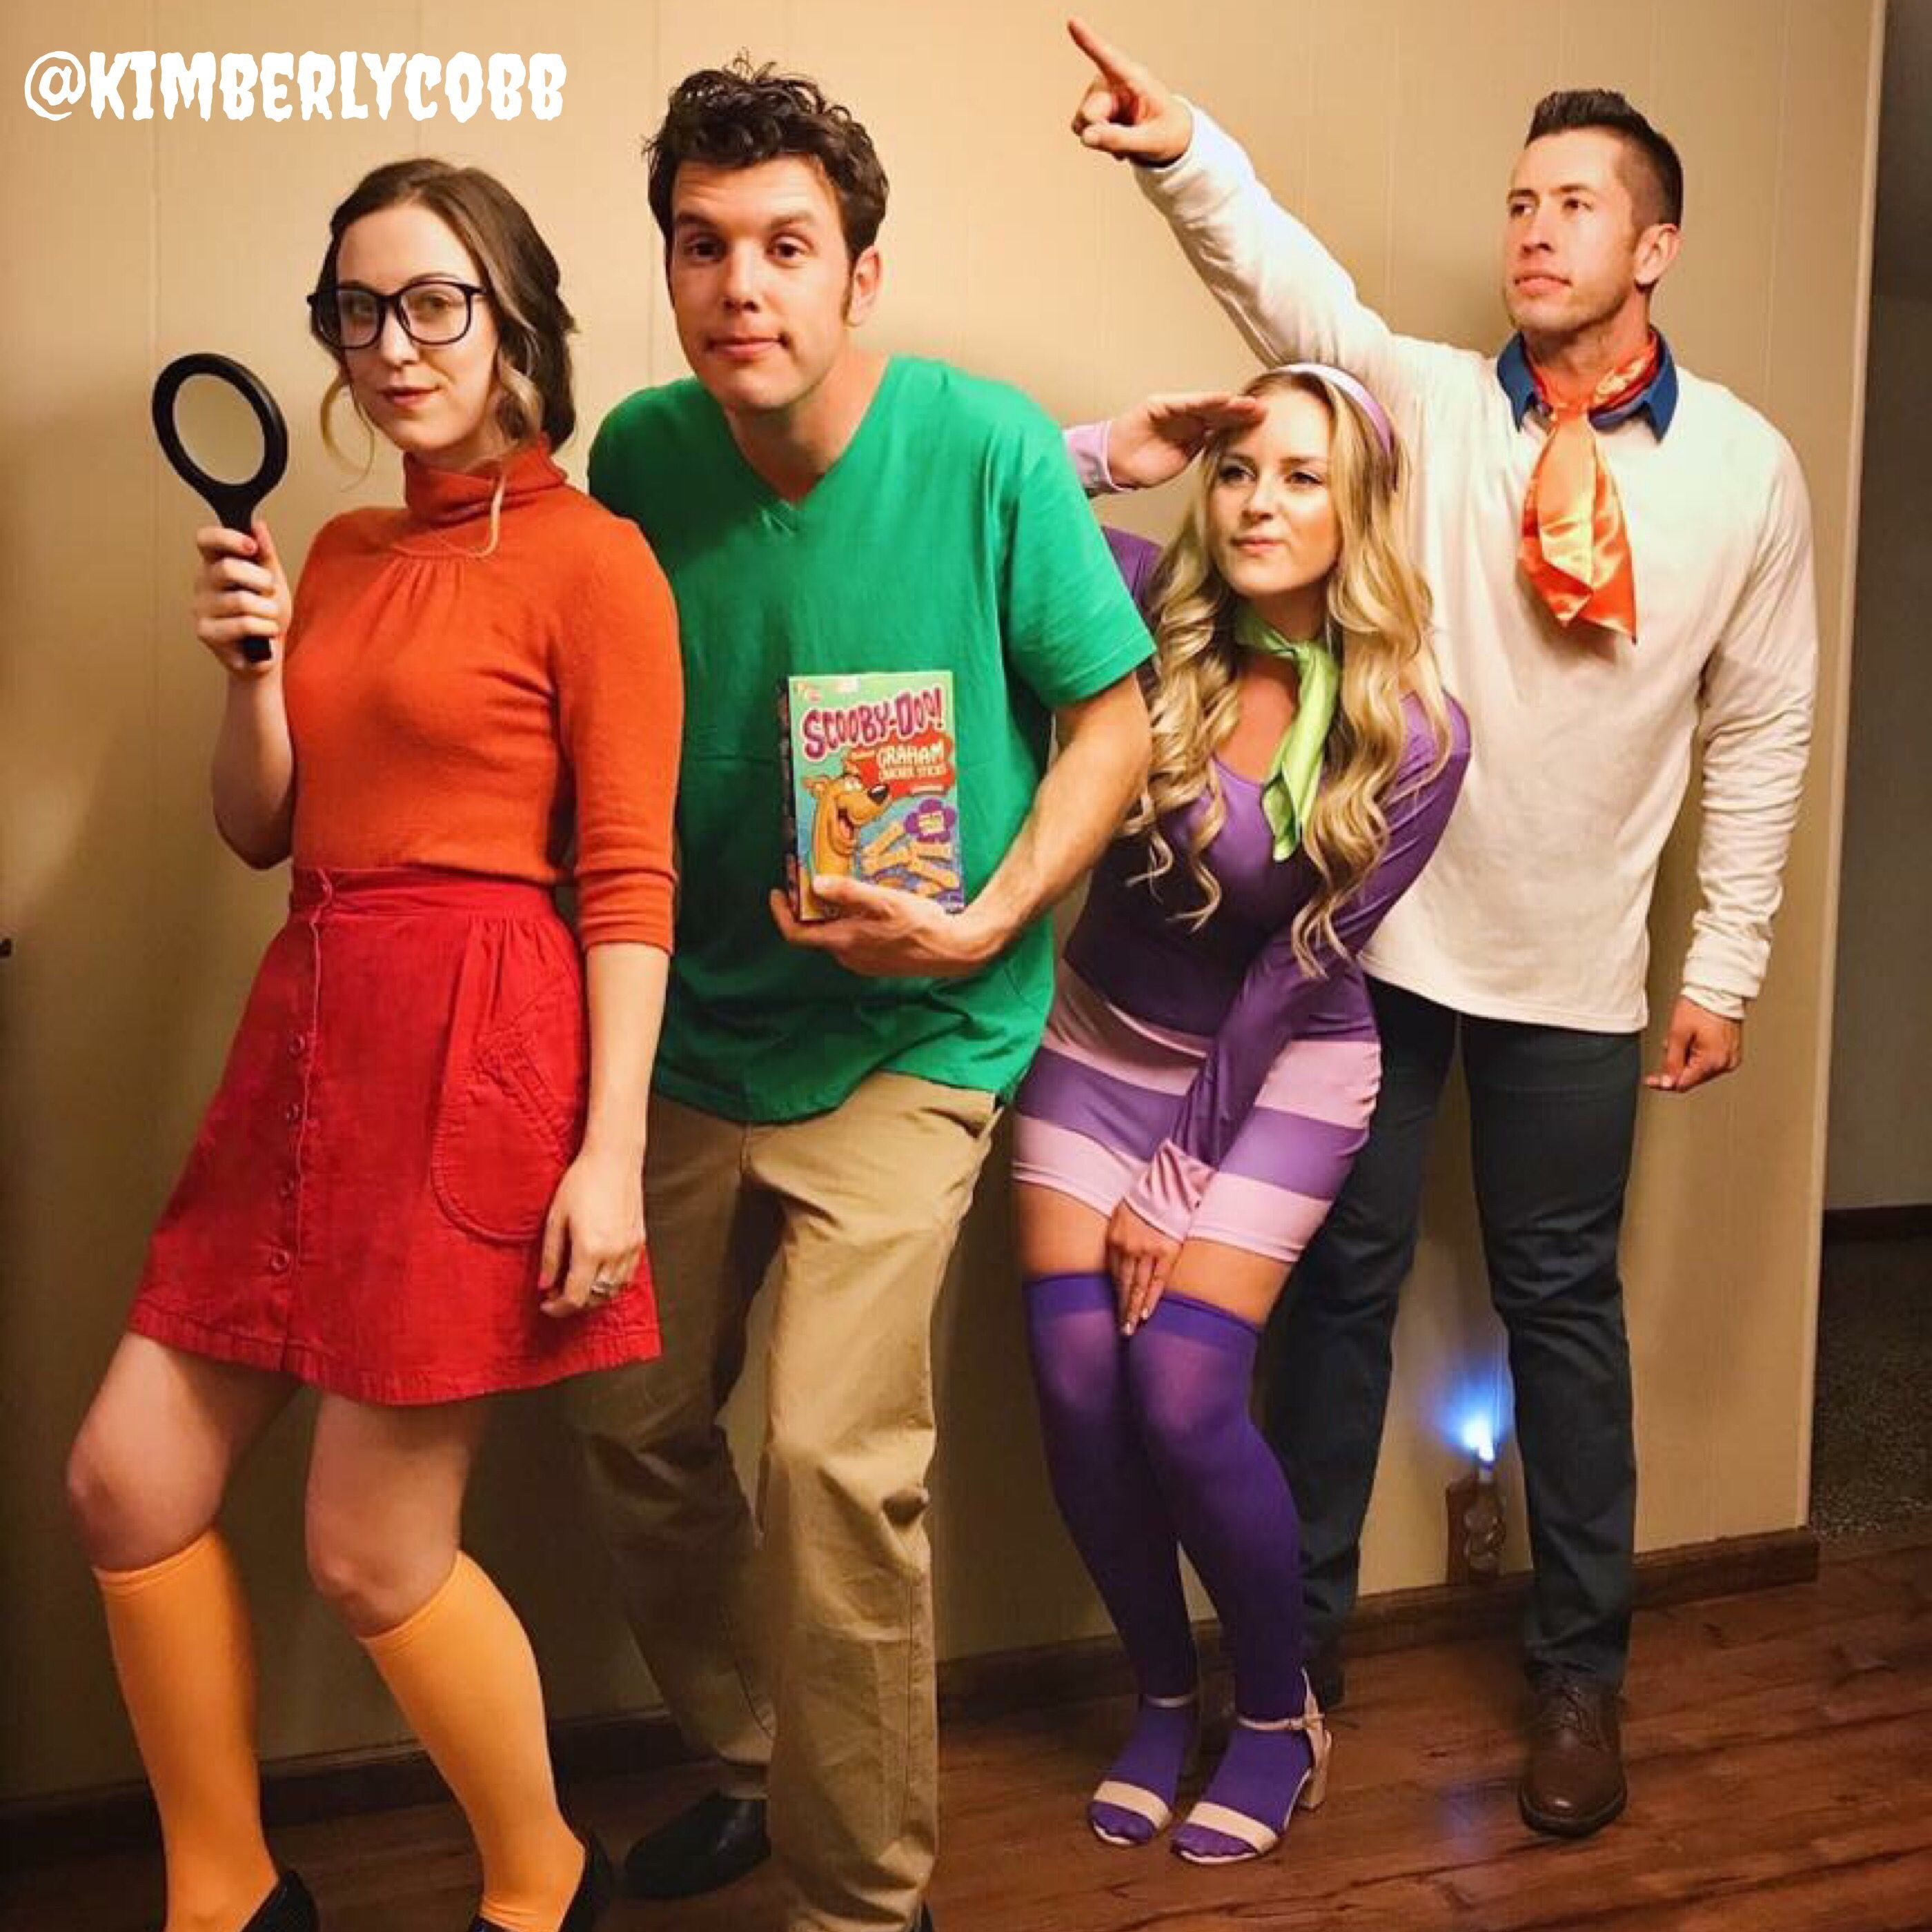 Best Halloween Costumes 2020 Best Halloween group costume, group of four people, scooby doo